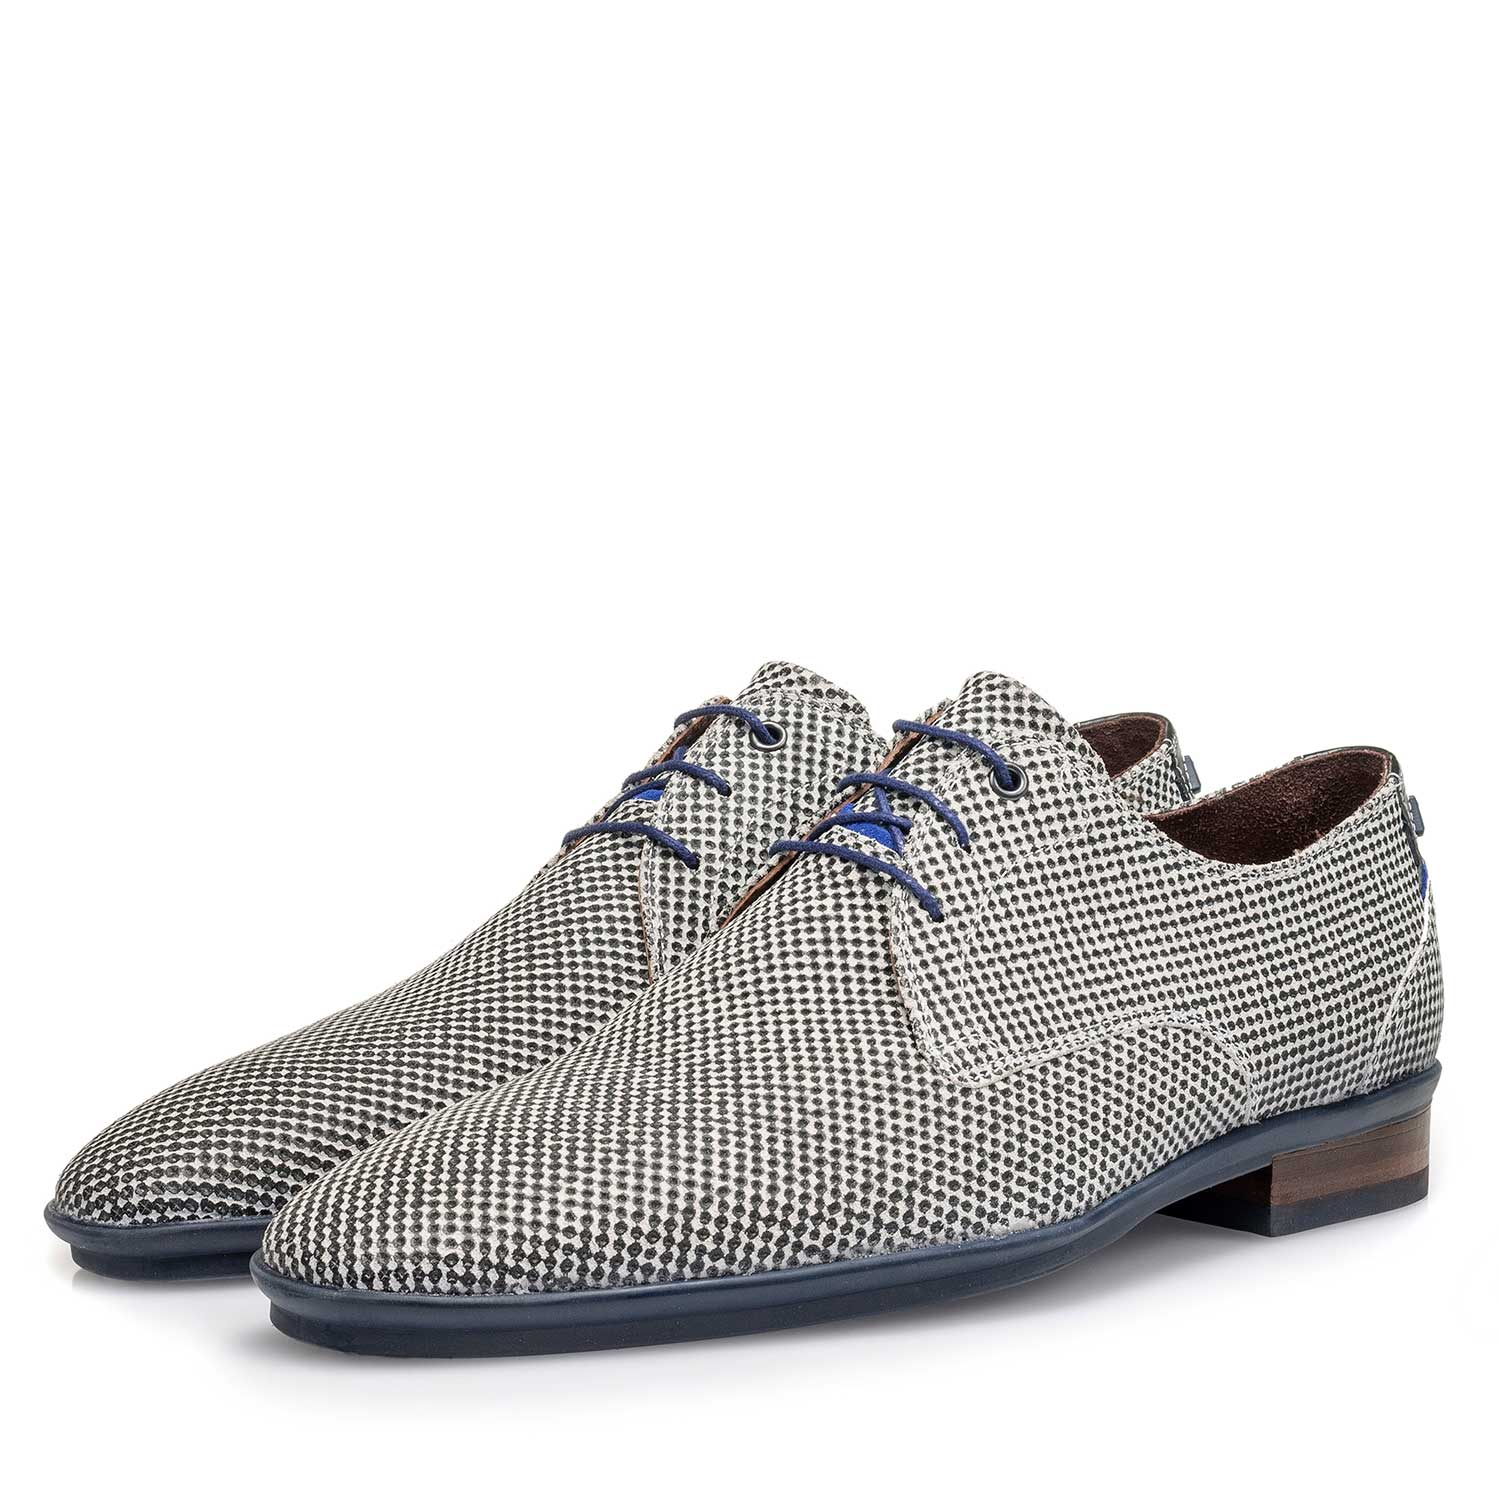 18120/12 - Light grey suede leather lace shoe with a mini print